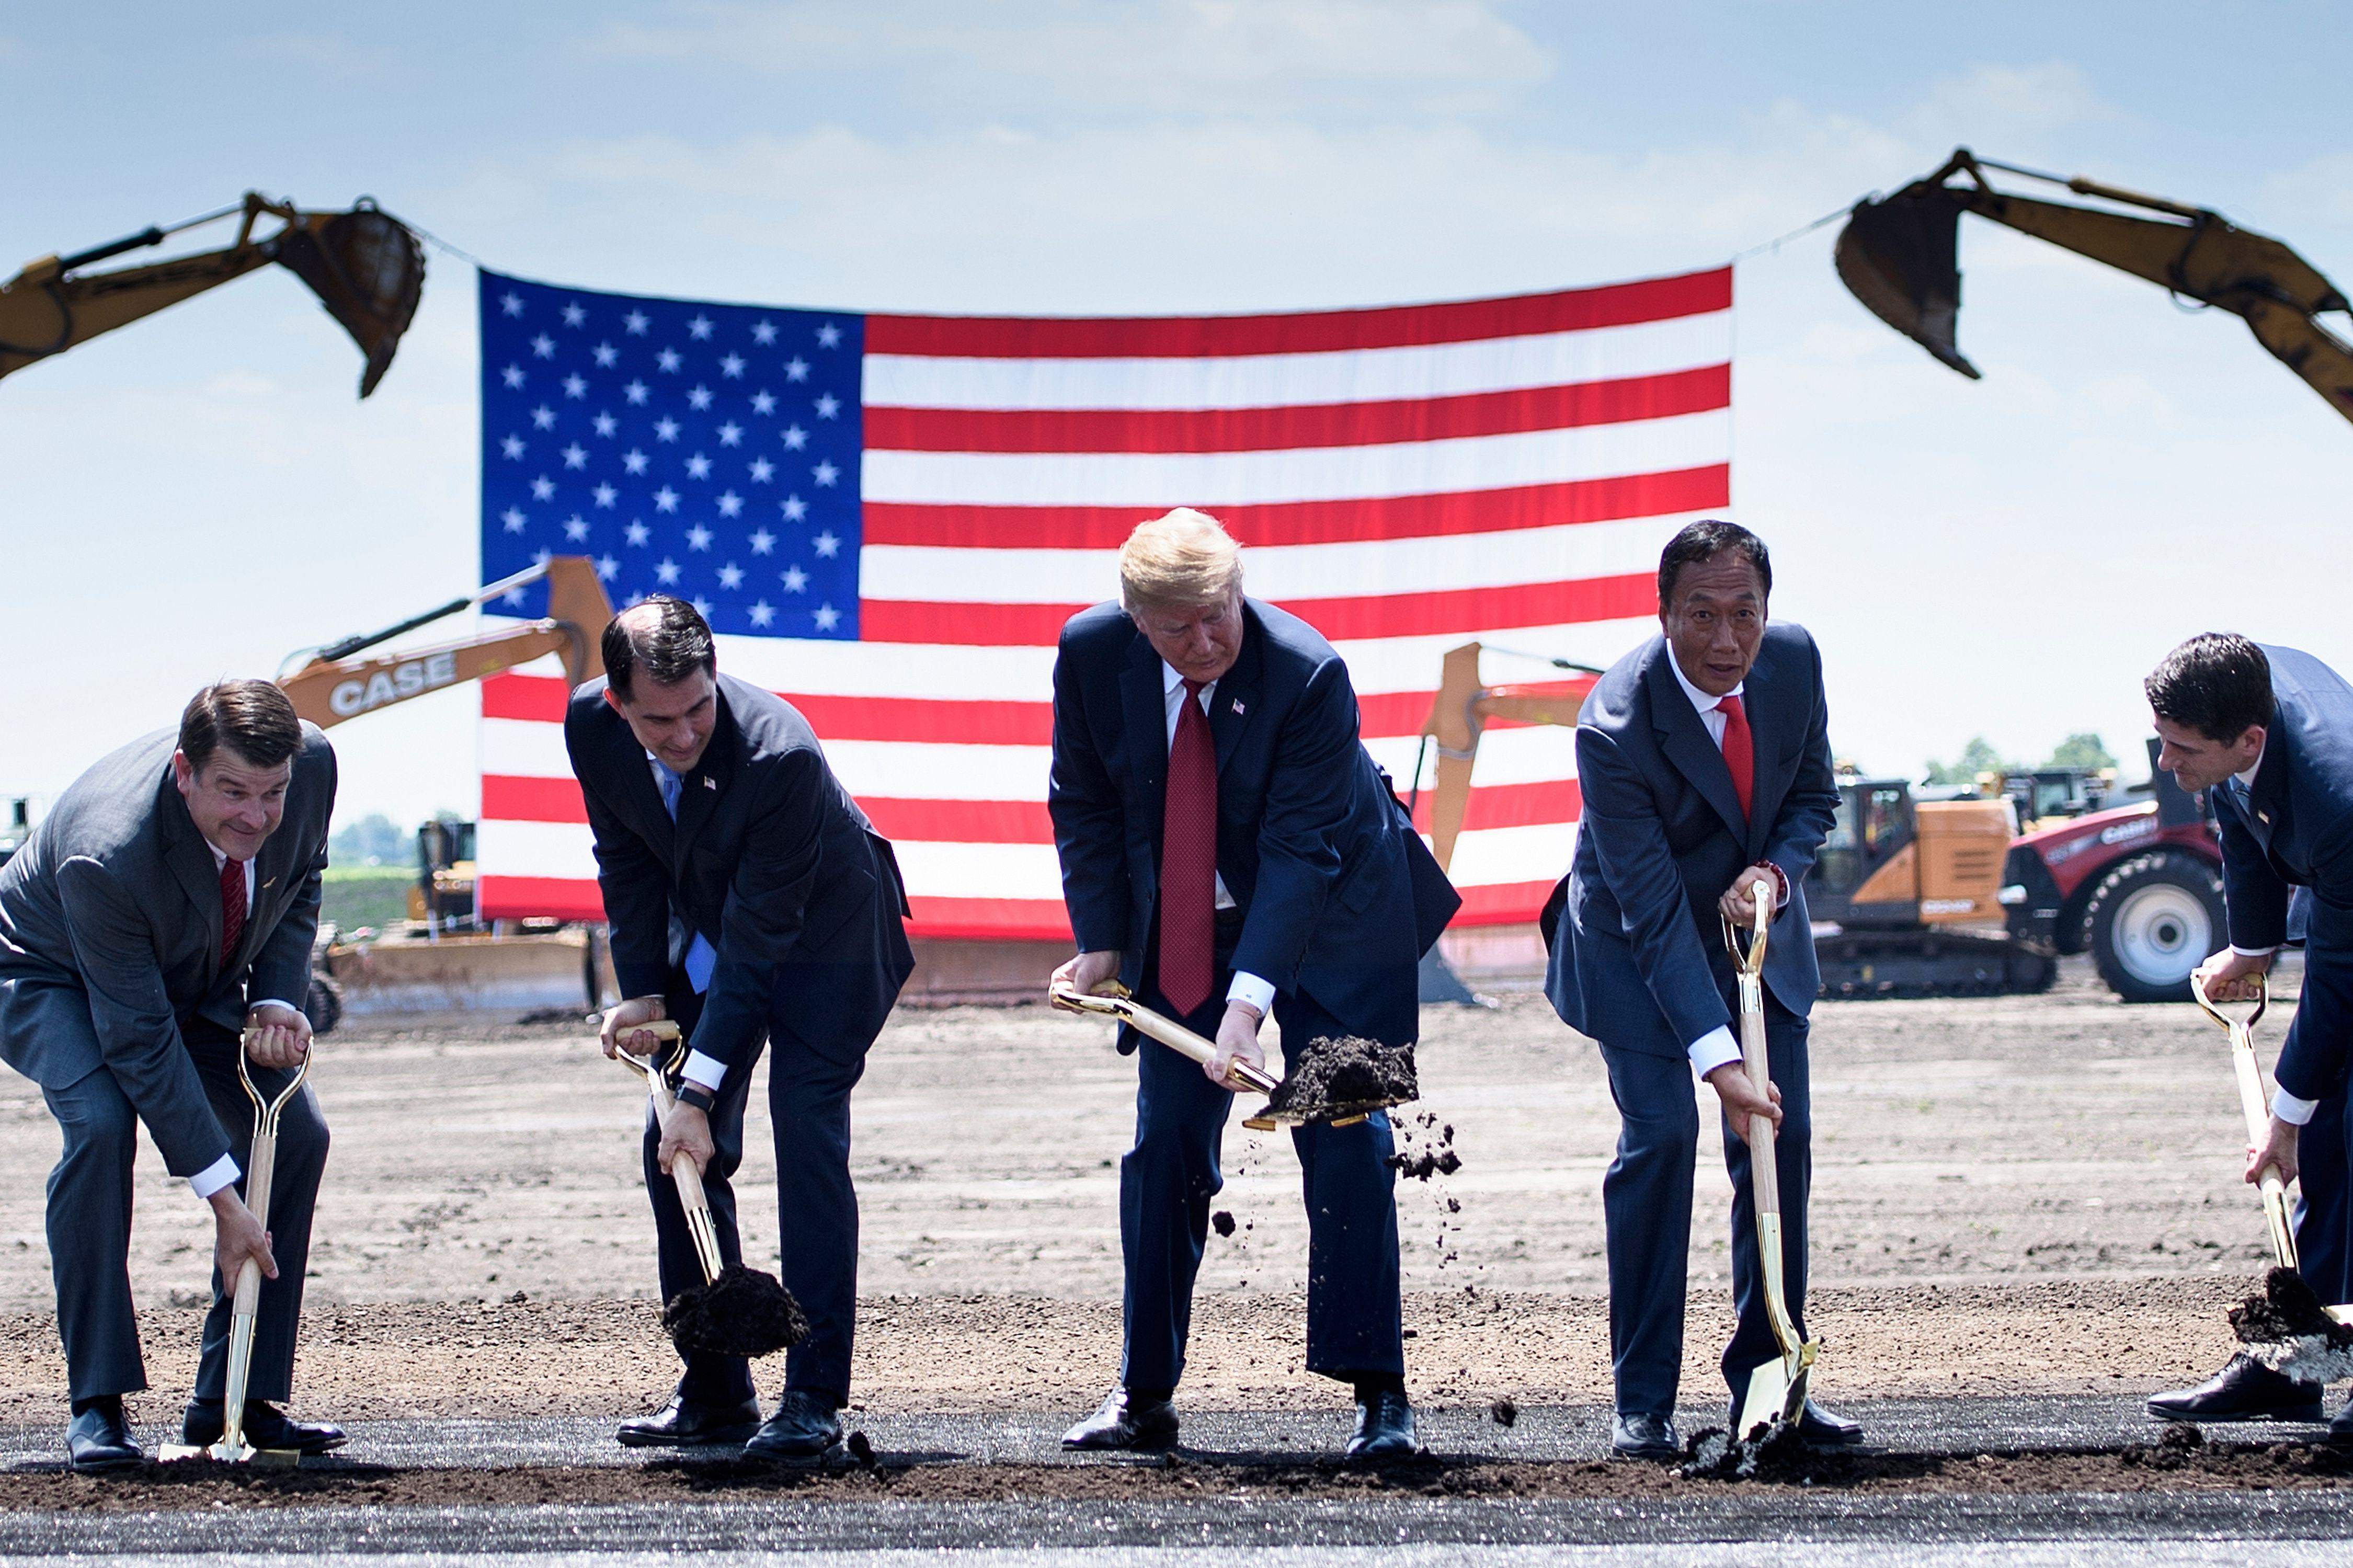 U.S. President Donald Trump participates in a groundbreaking for a Foxconn facility at the Wisconn Valley Science and Technology Park in Mount Pleasant, Wisconsin, on June 28.